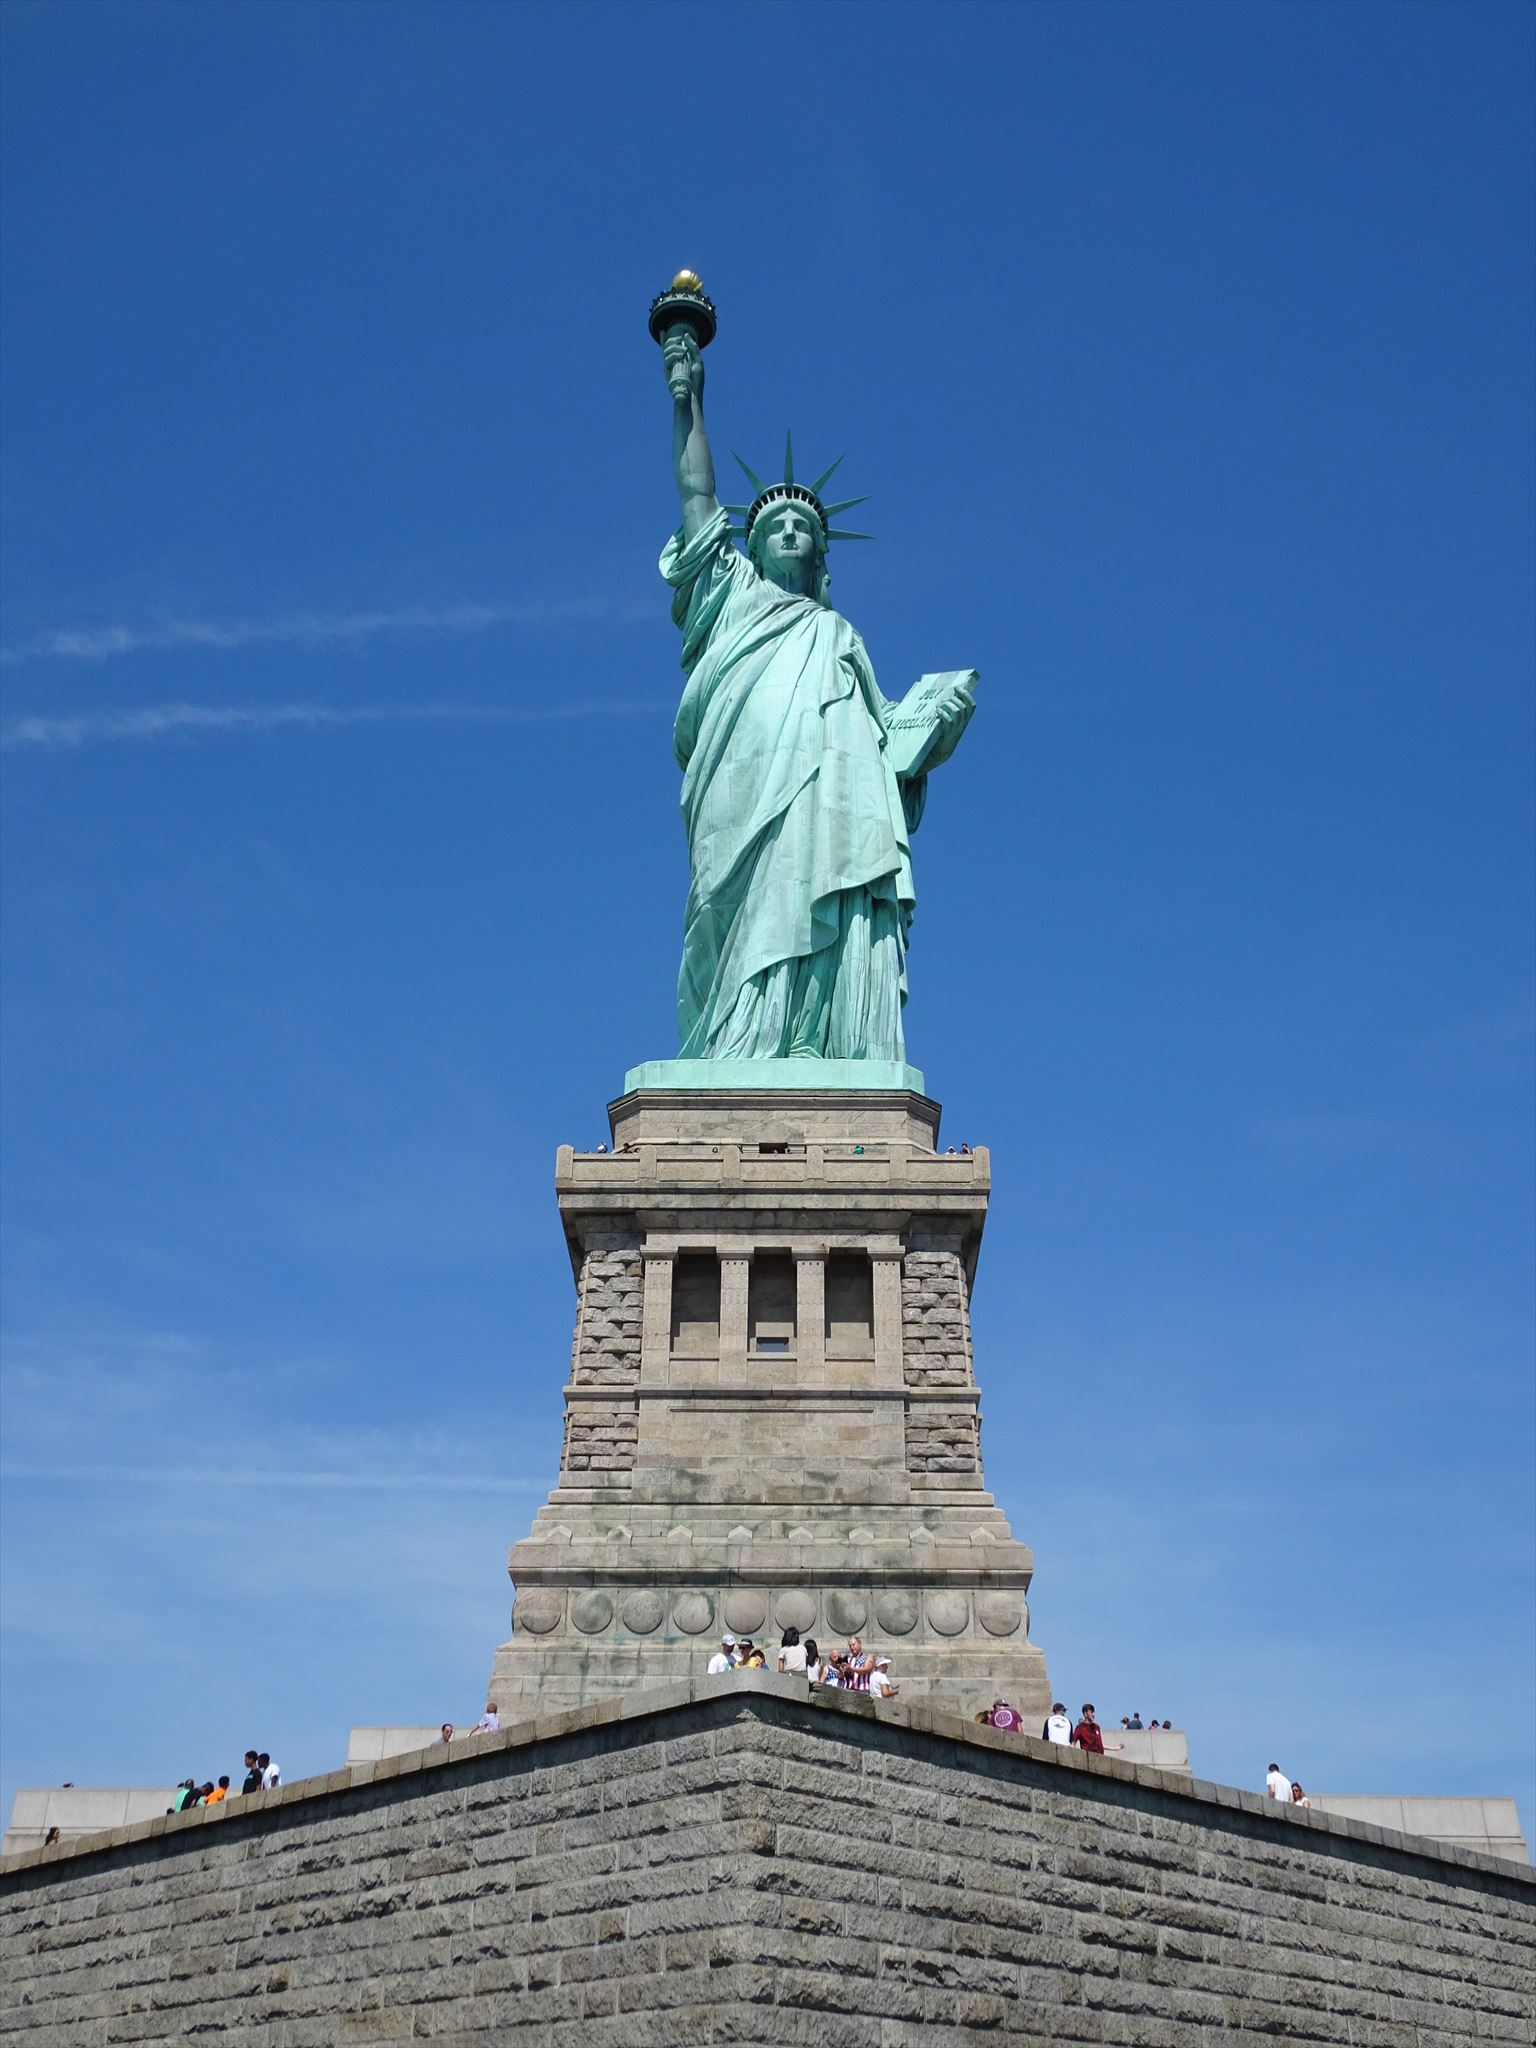 tickets trips price of statue island liberty ferry destinations tours pedestal ellis